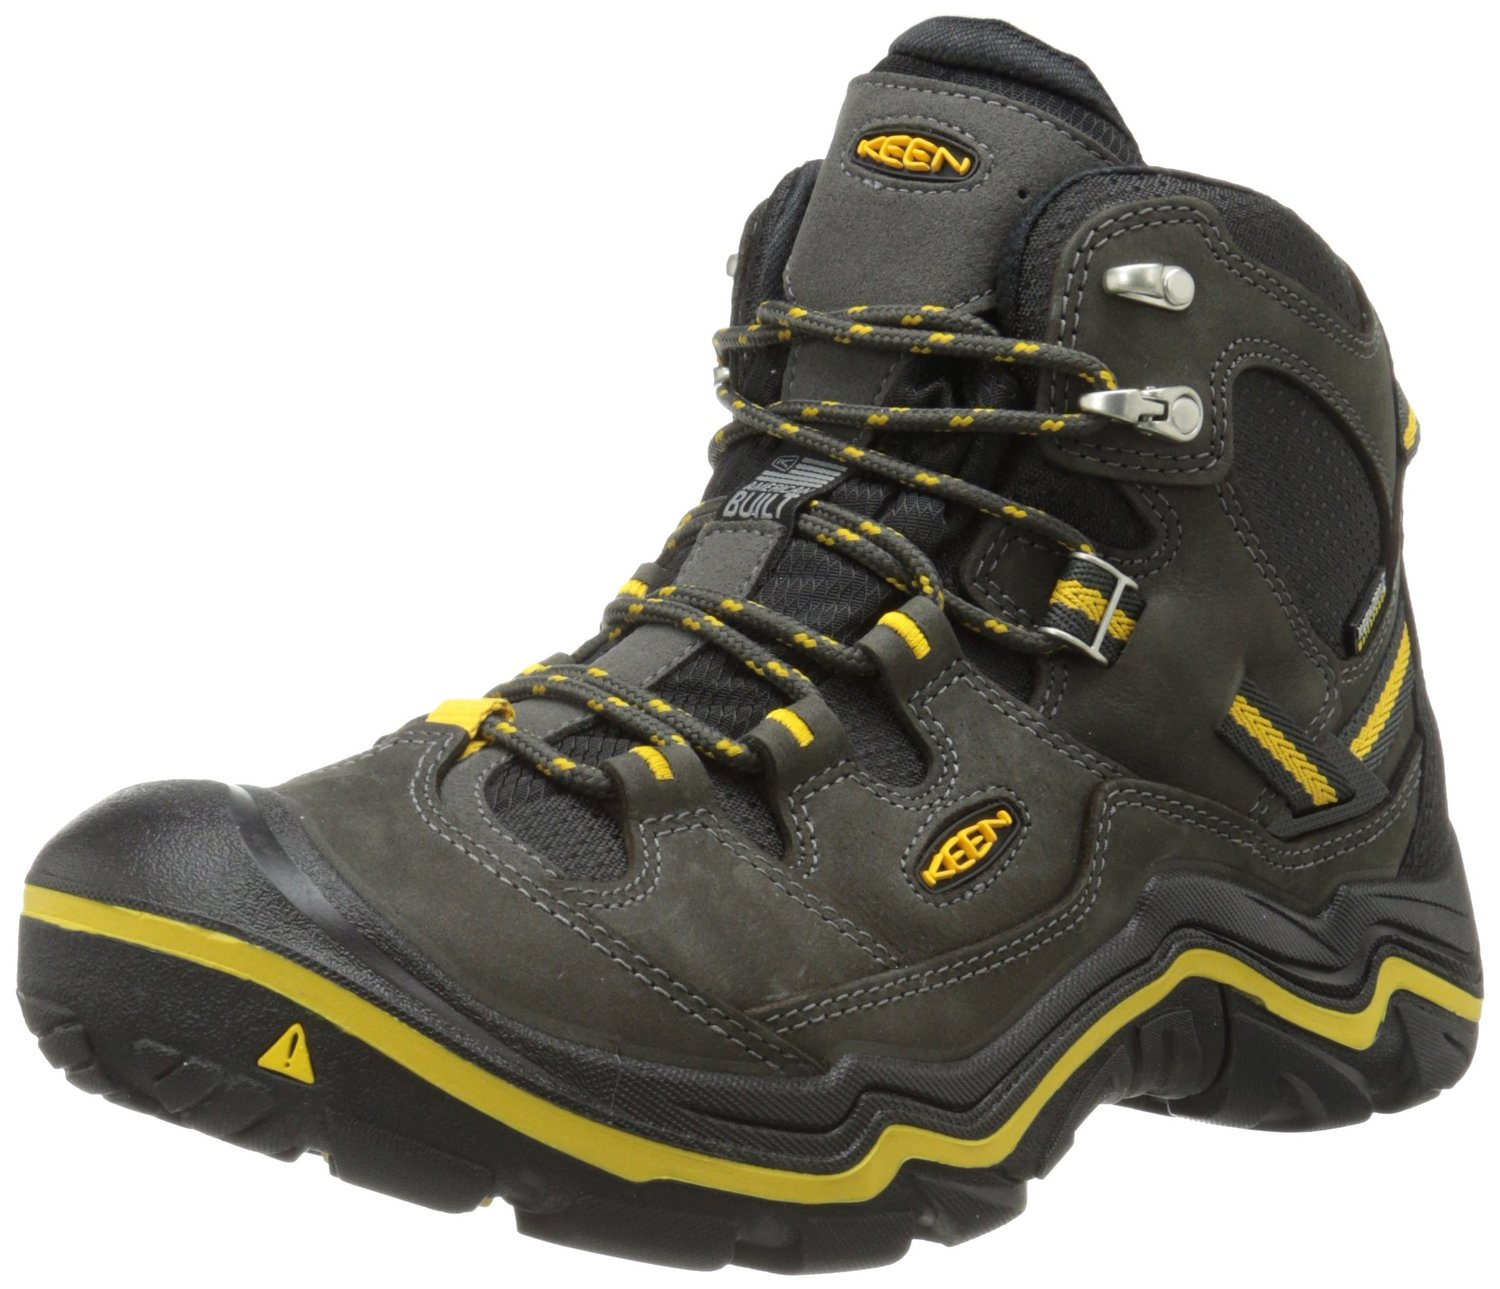 KEEN Men's Durand Mid WP Hiking Shoe